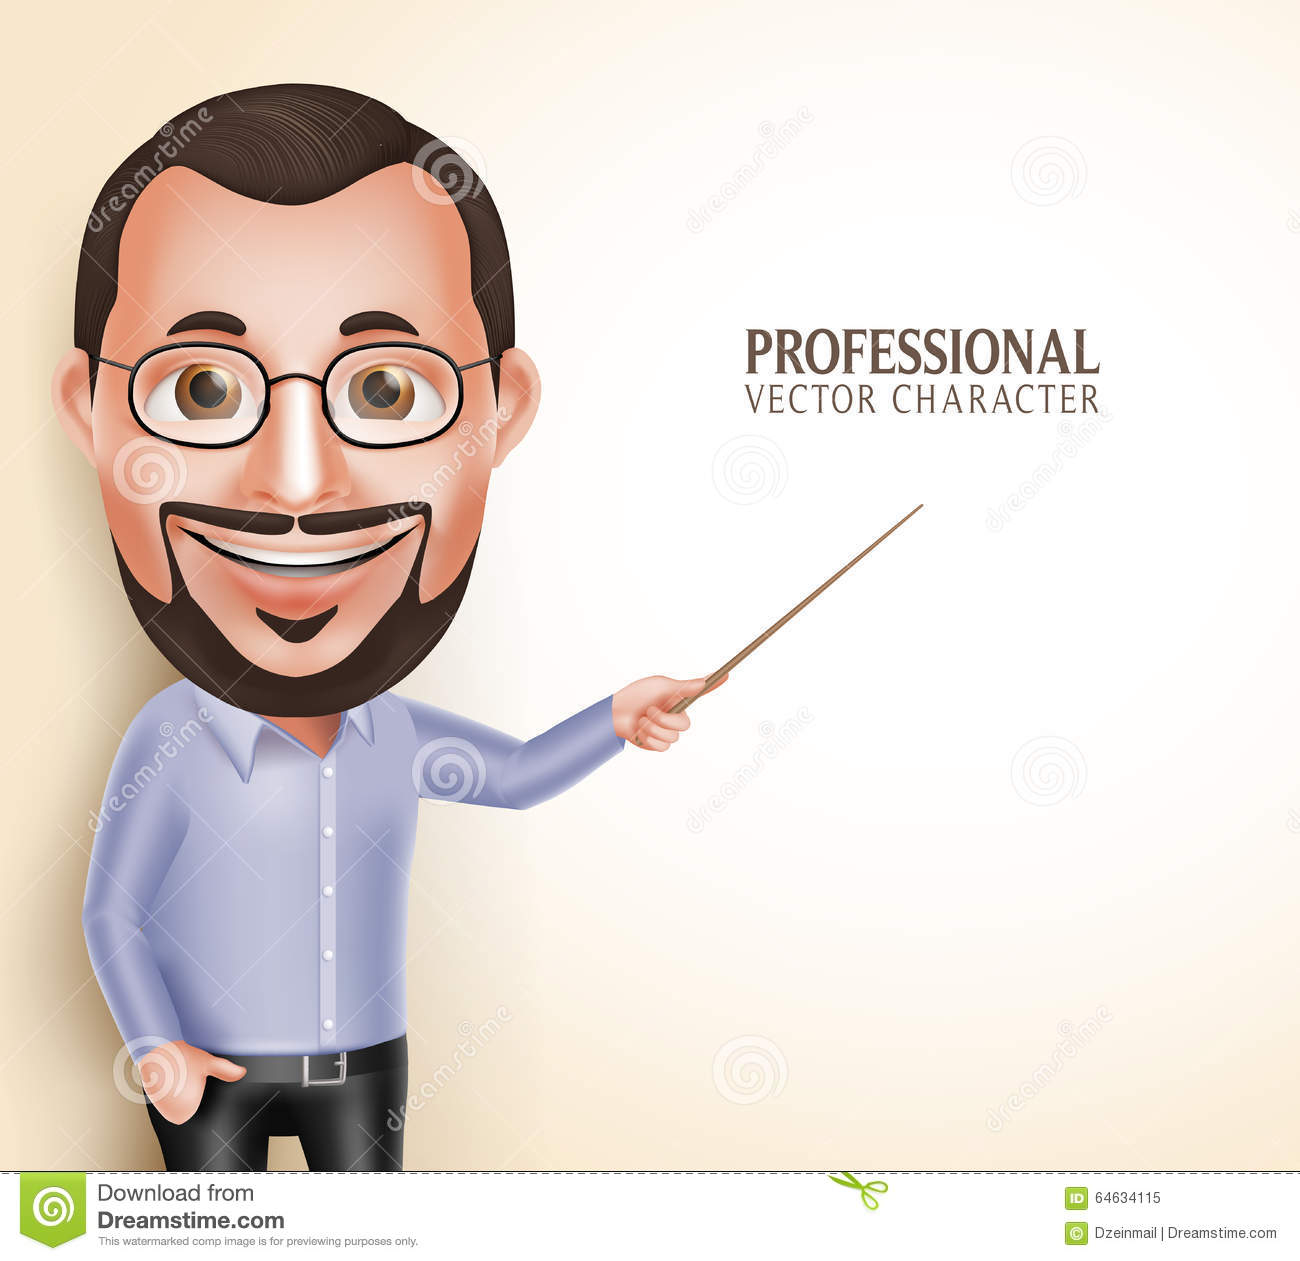 The Qualities of a Truly Professional Teacher